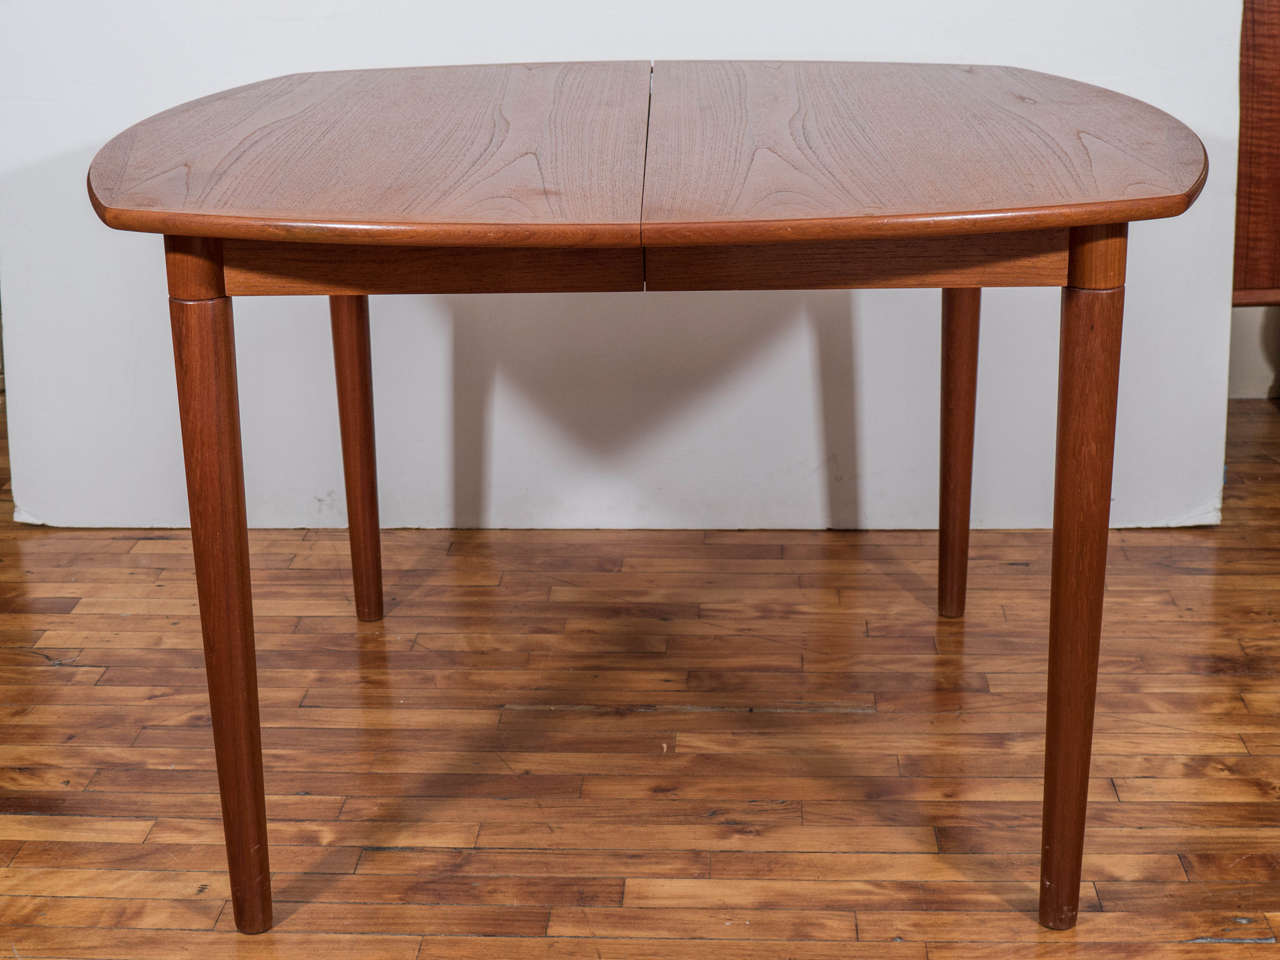 Teak extension dining table in excellent condition very clean and - Mid Century Koefoeds Hornslet Teak Extension Dining Table 3